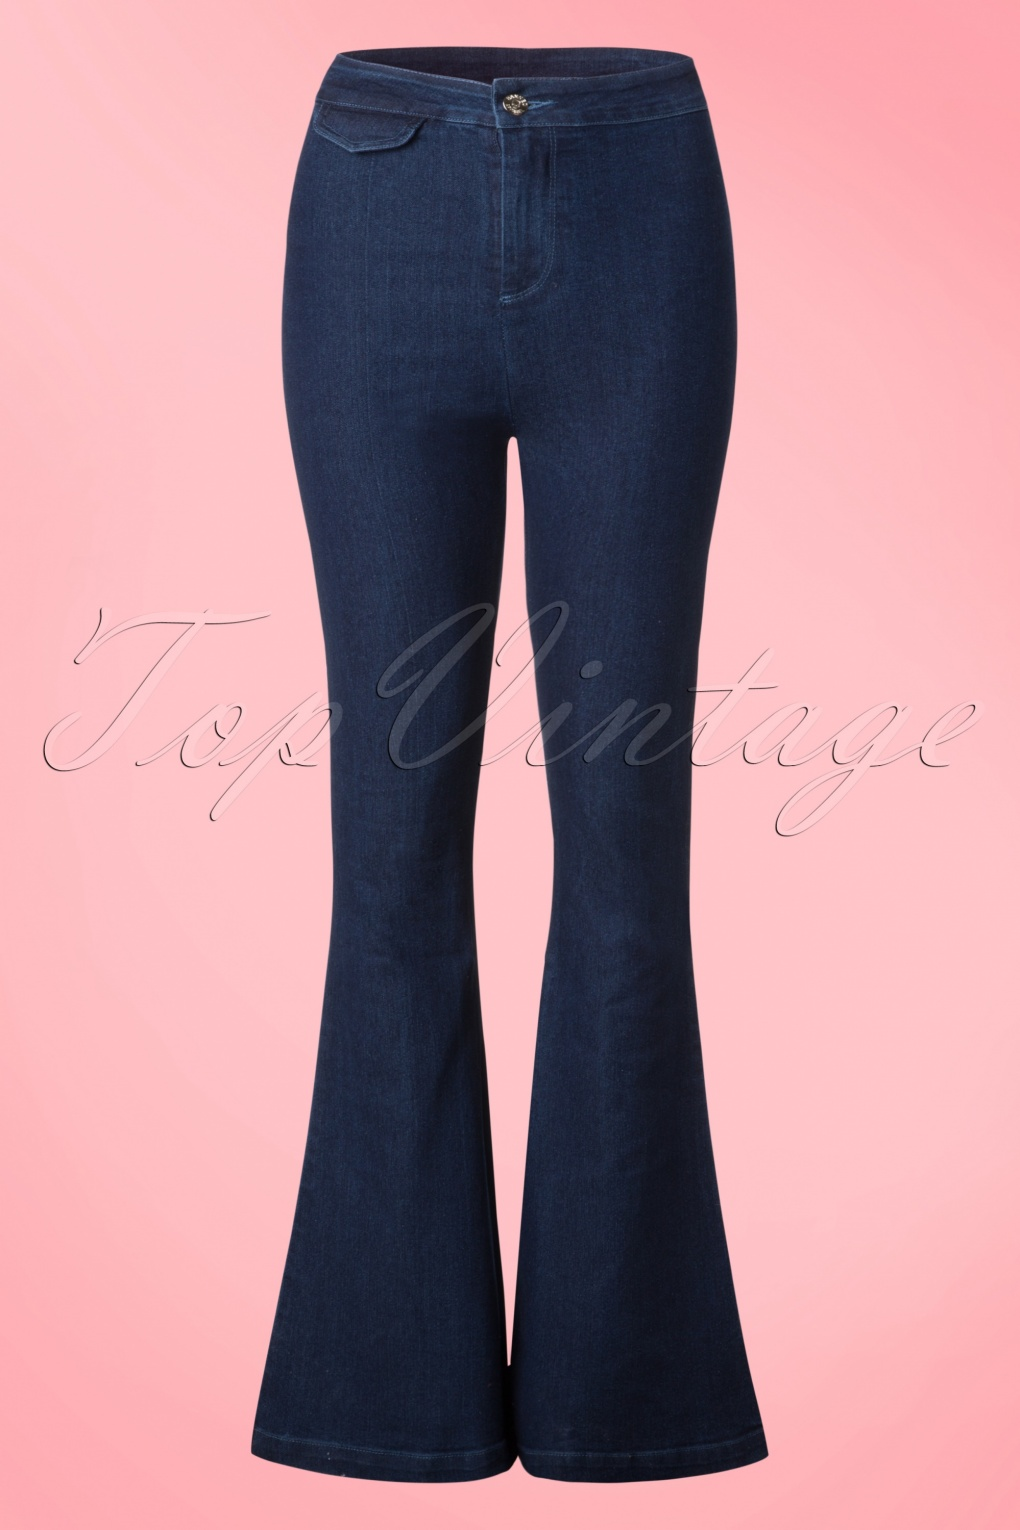 1960s Style Women's Pants 70s Legs Eleven Flared Trousers in Denim £39.05 AT vintagedancer.com